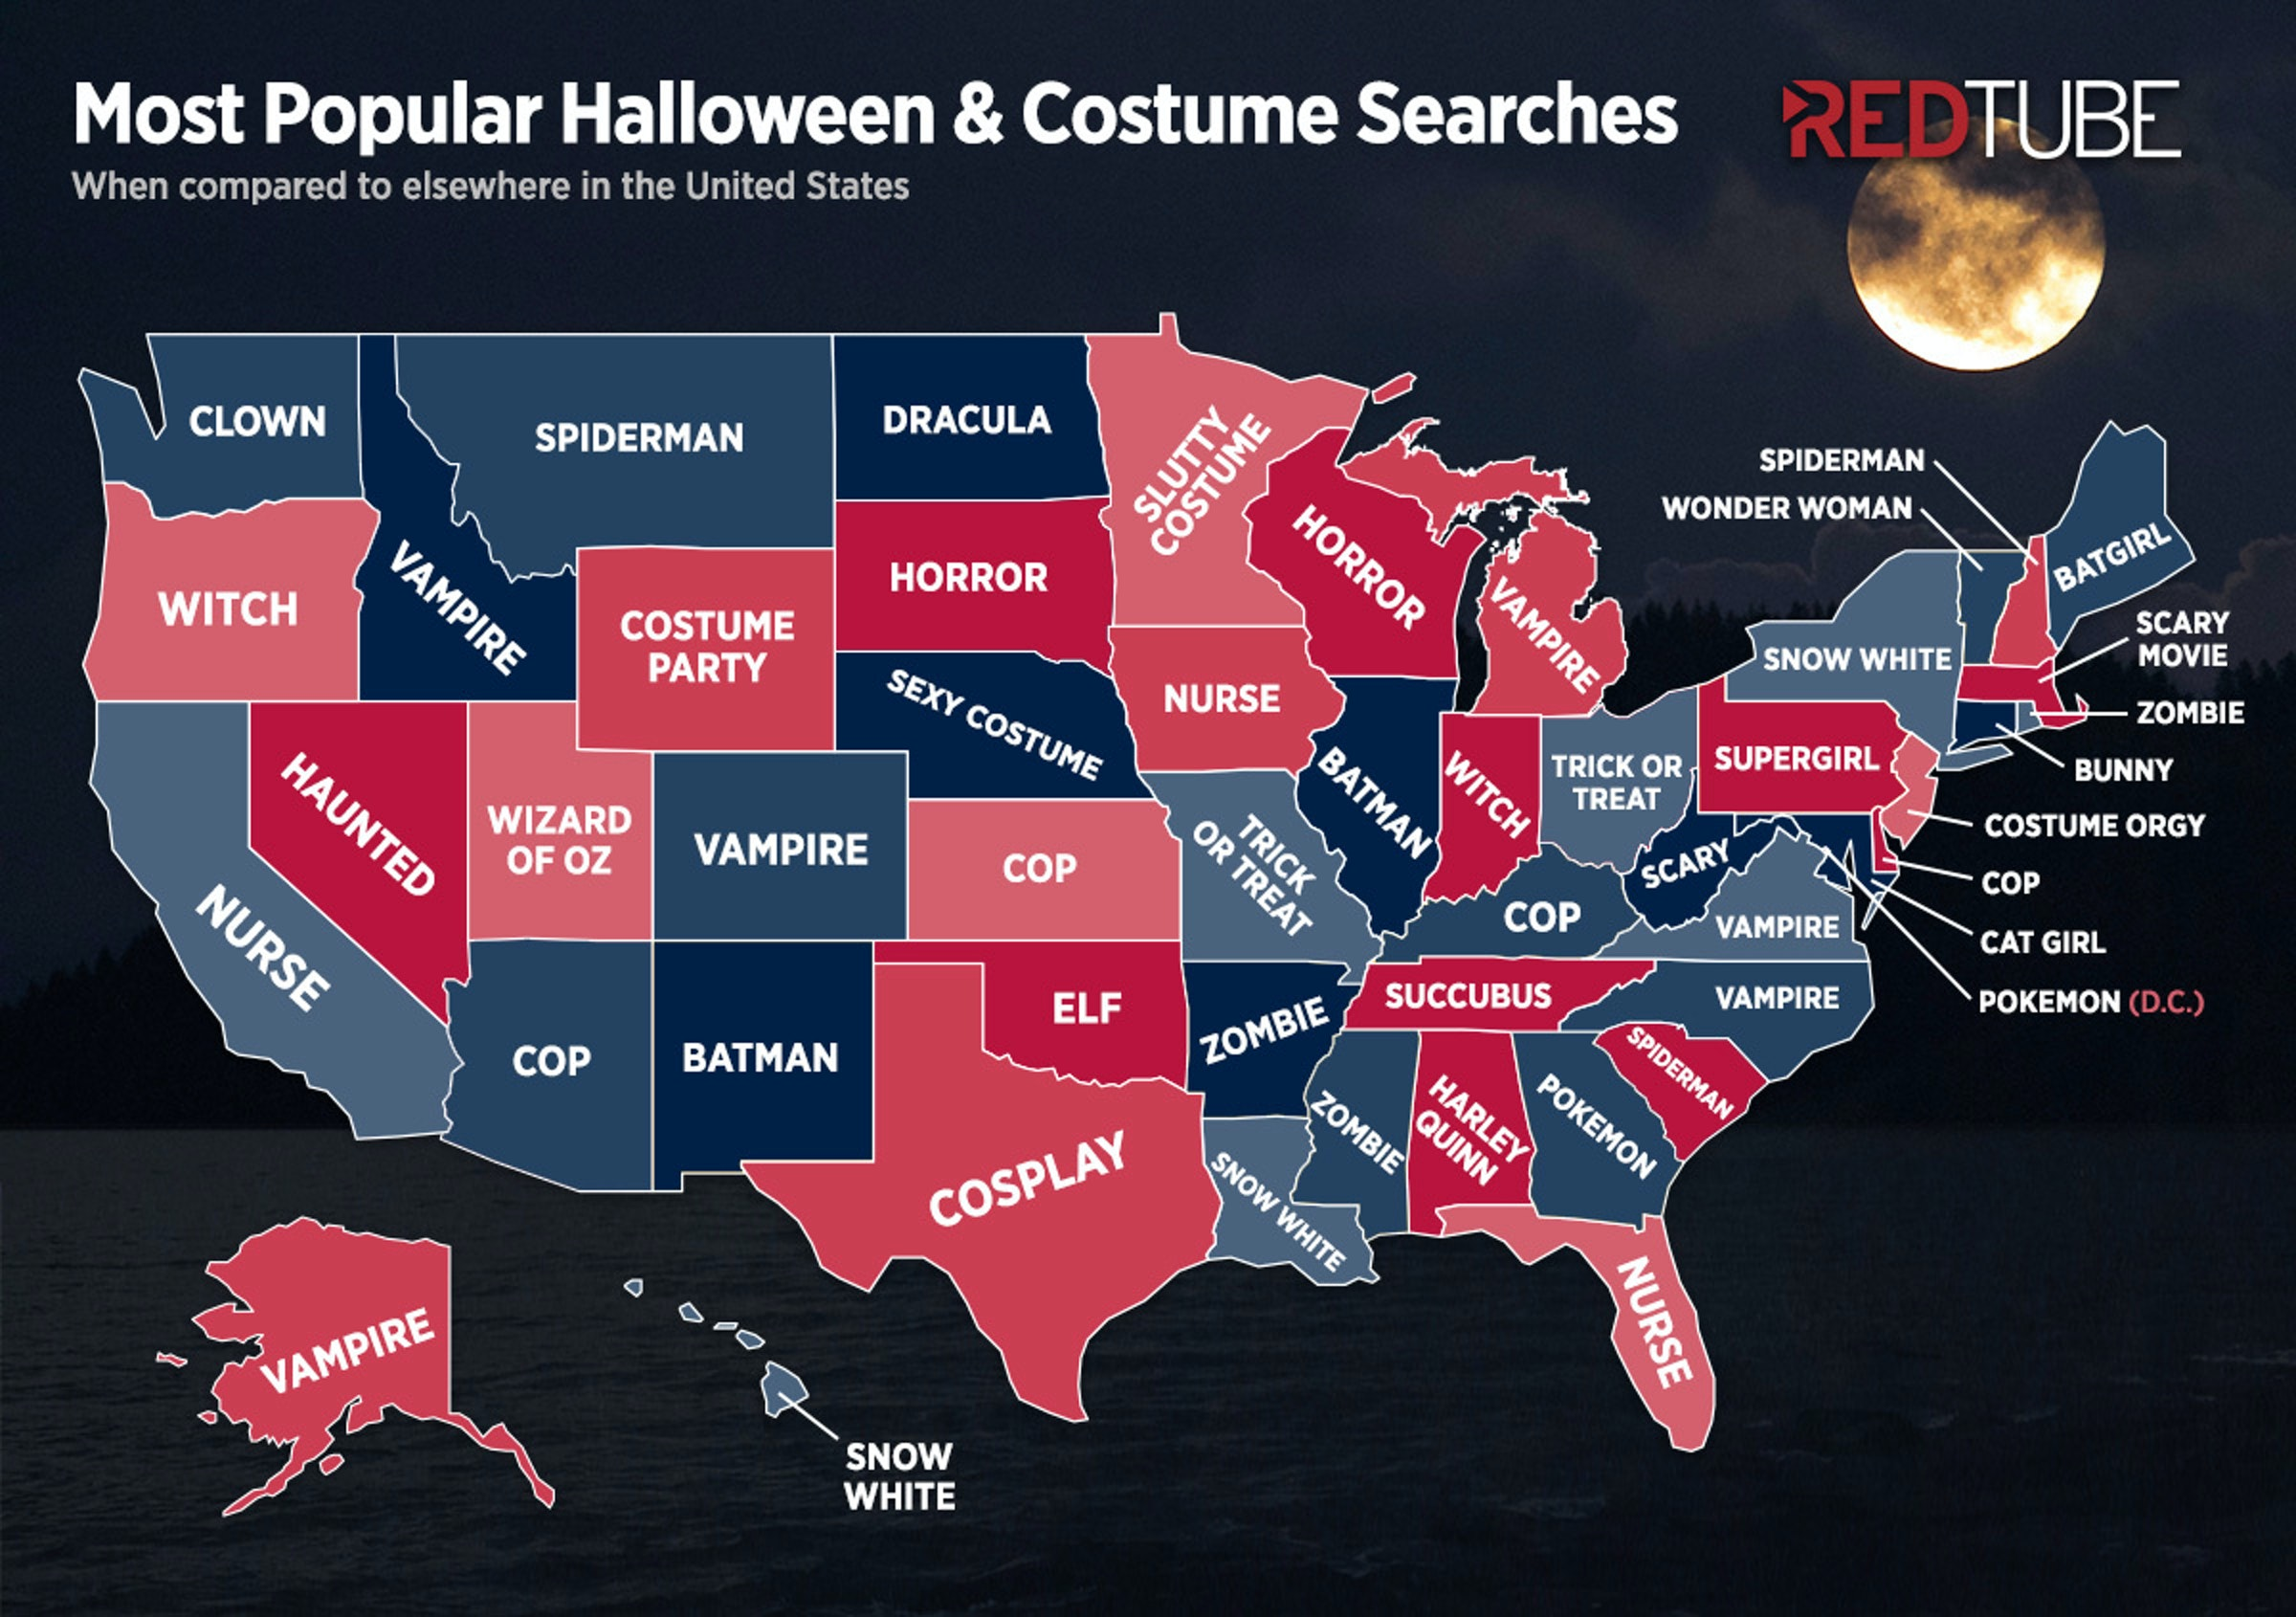 These are America's Hallowe'en porn preferences.